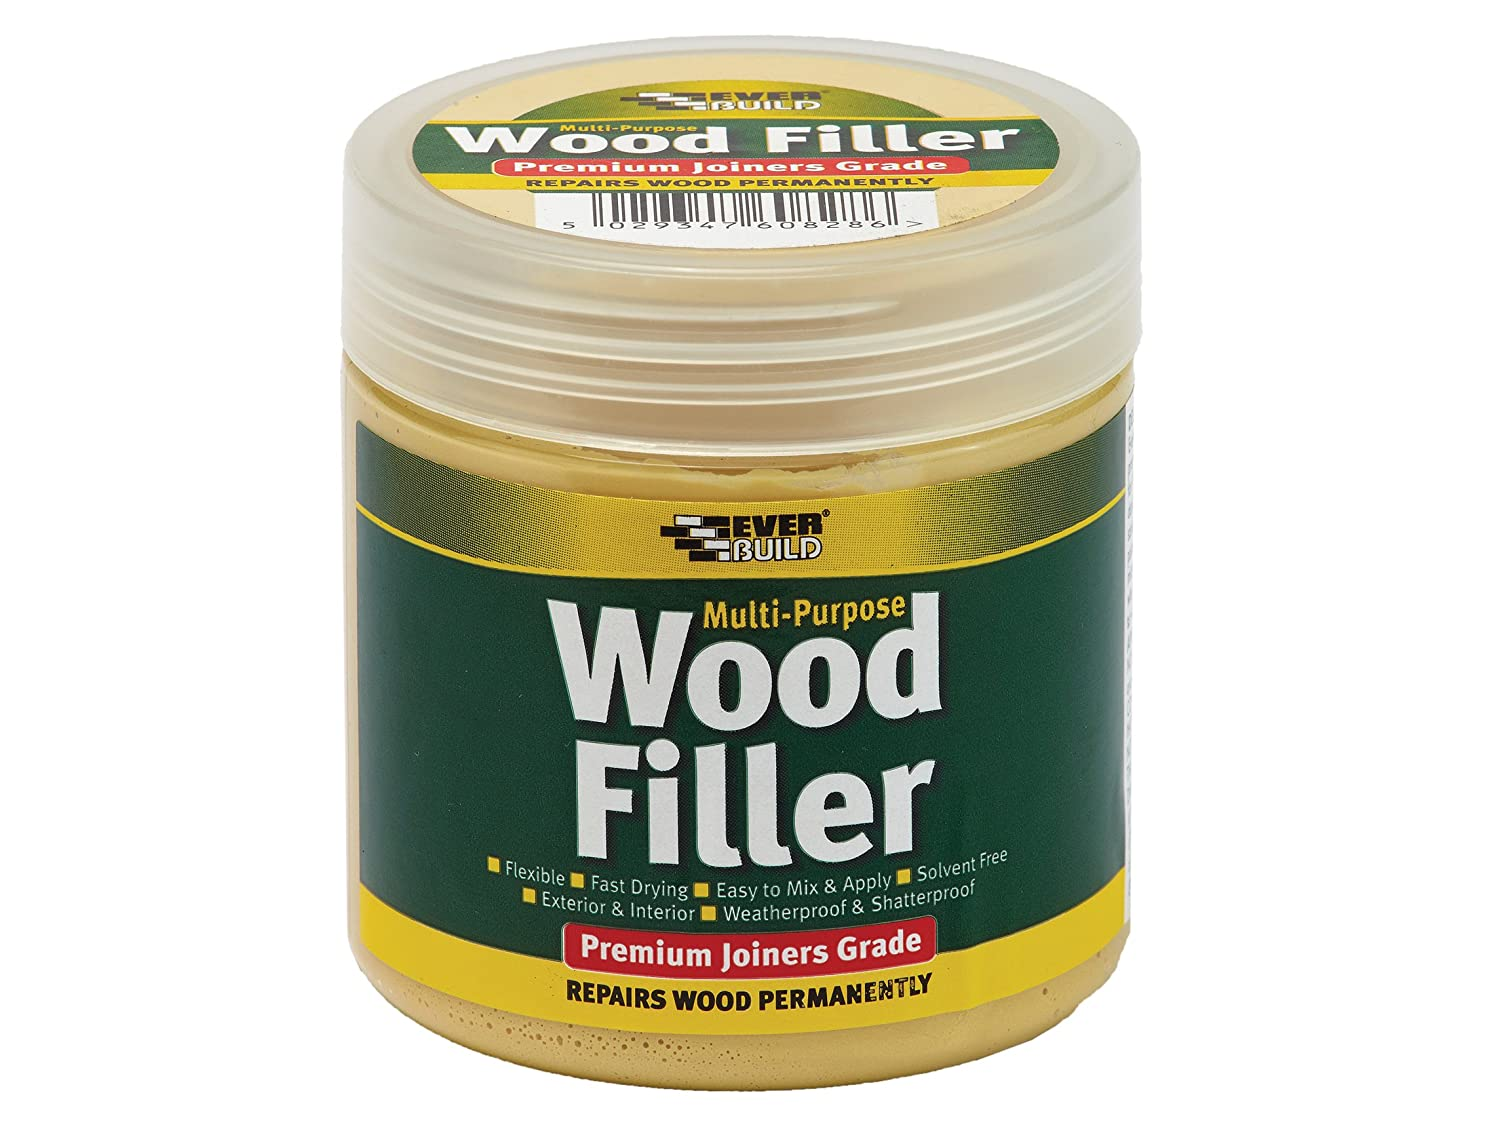 Multi purpose premium joiners grade wood filler - Filling small imperfections in wood - 250ml - Light Oak Everbuild MPWOODLTOAK2-EBD